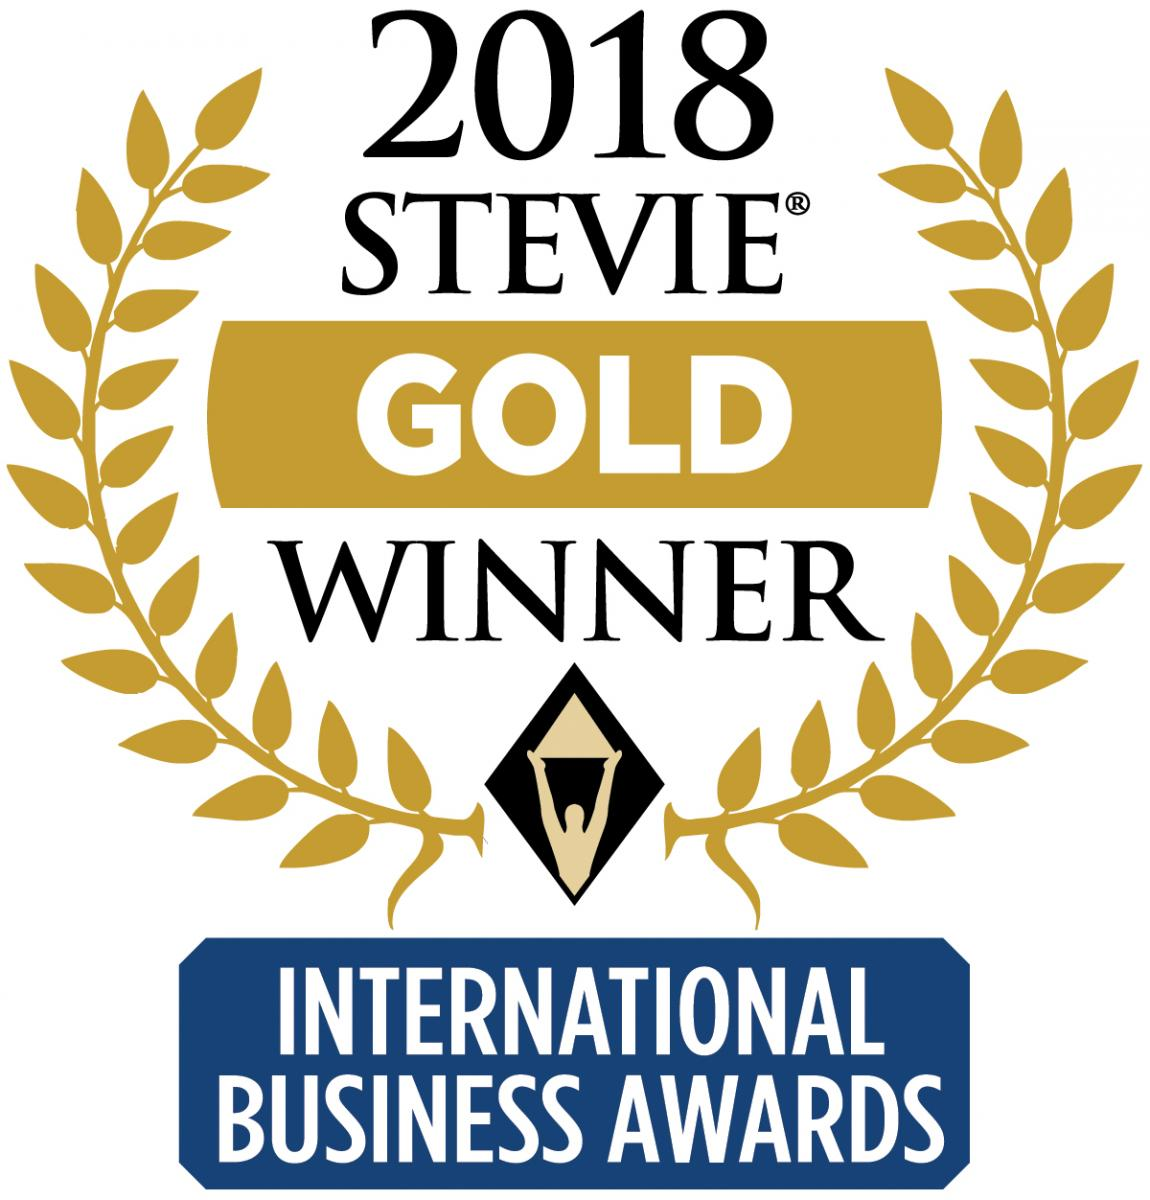 2018 Stevie Gold Winner